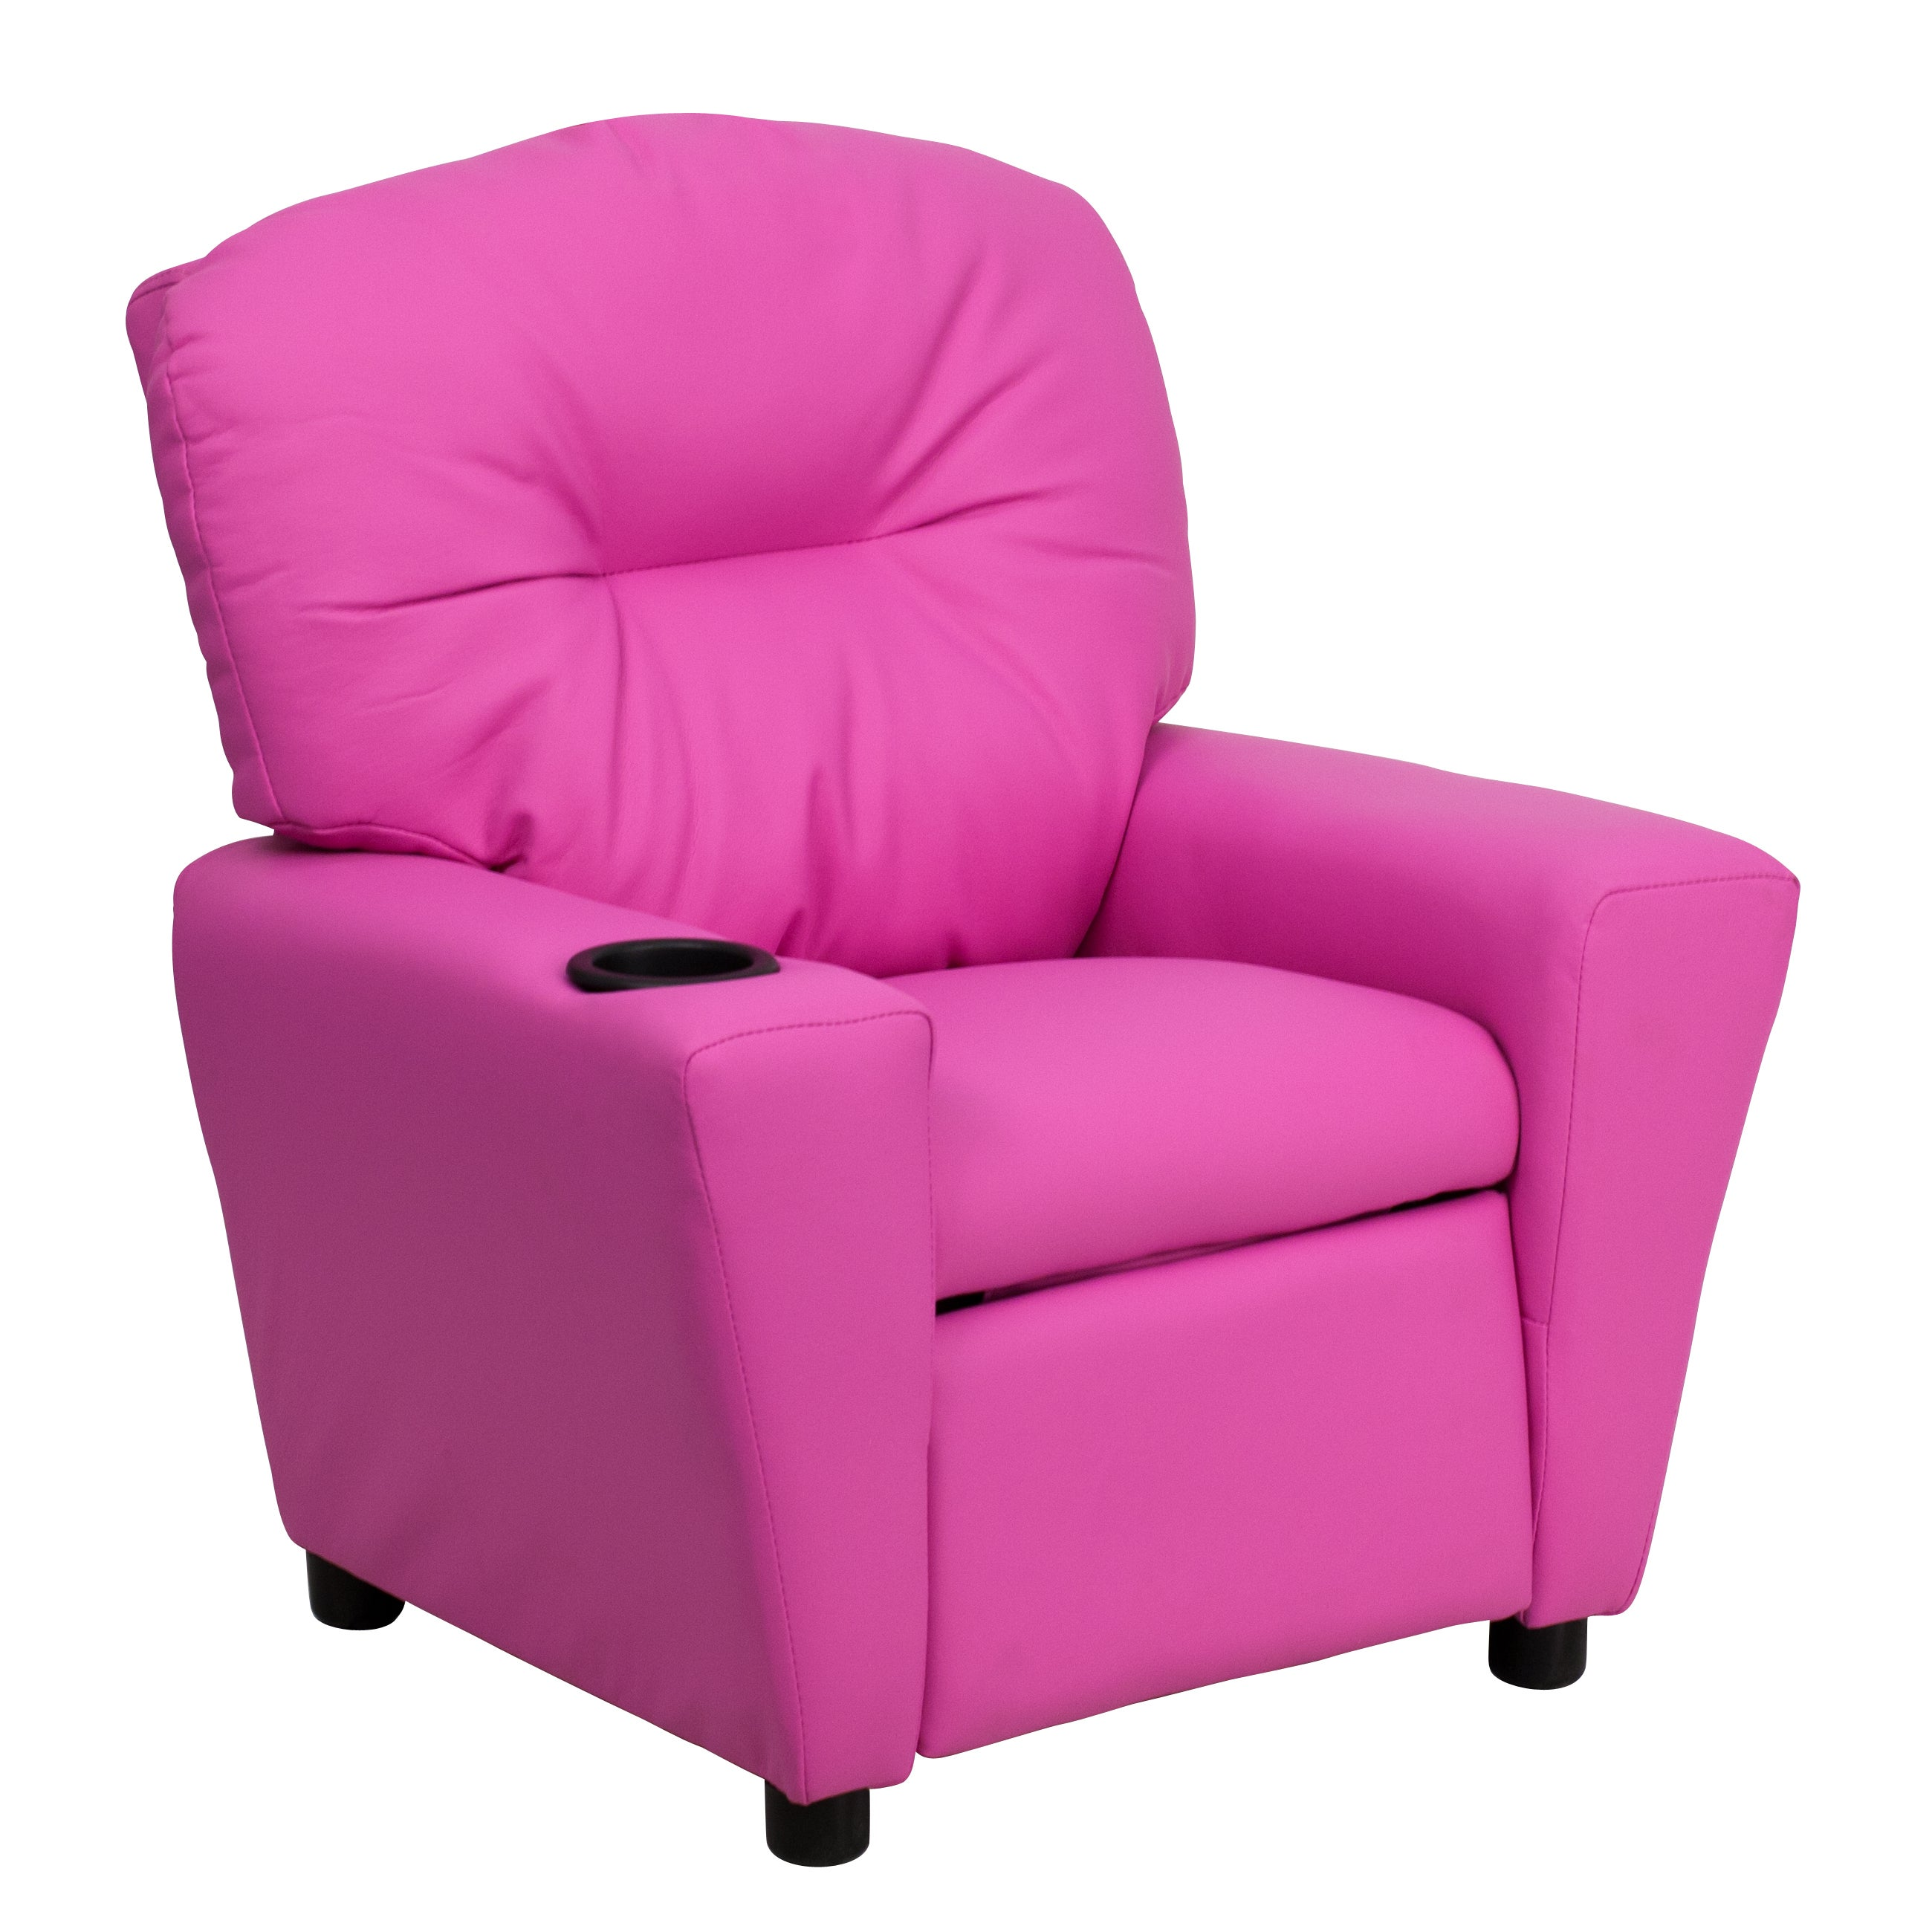 Flash furniture contemporary hot pink vinyl kids recliner for Small chair for kid